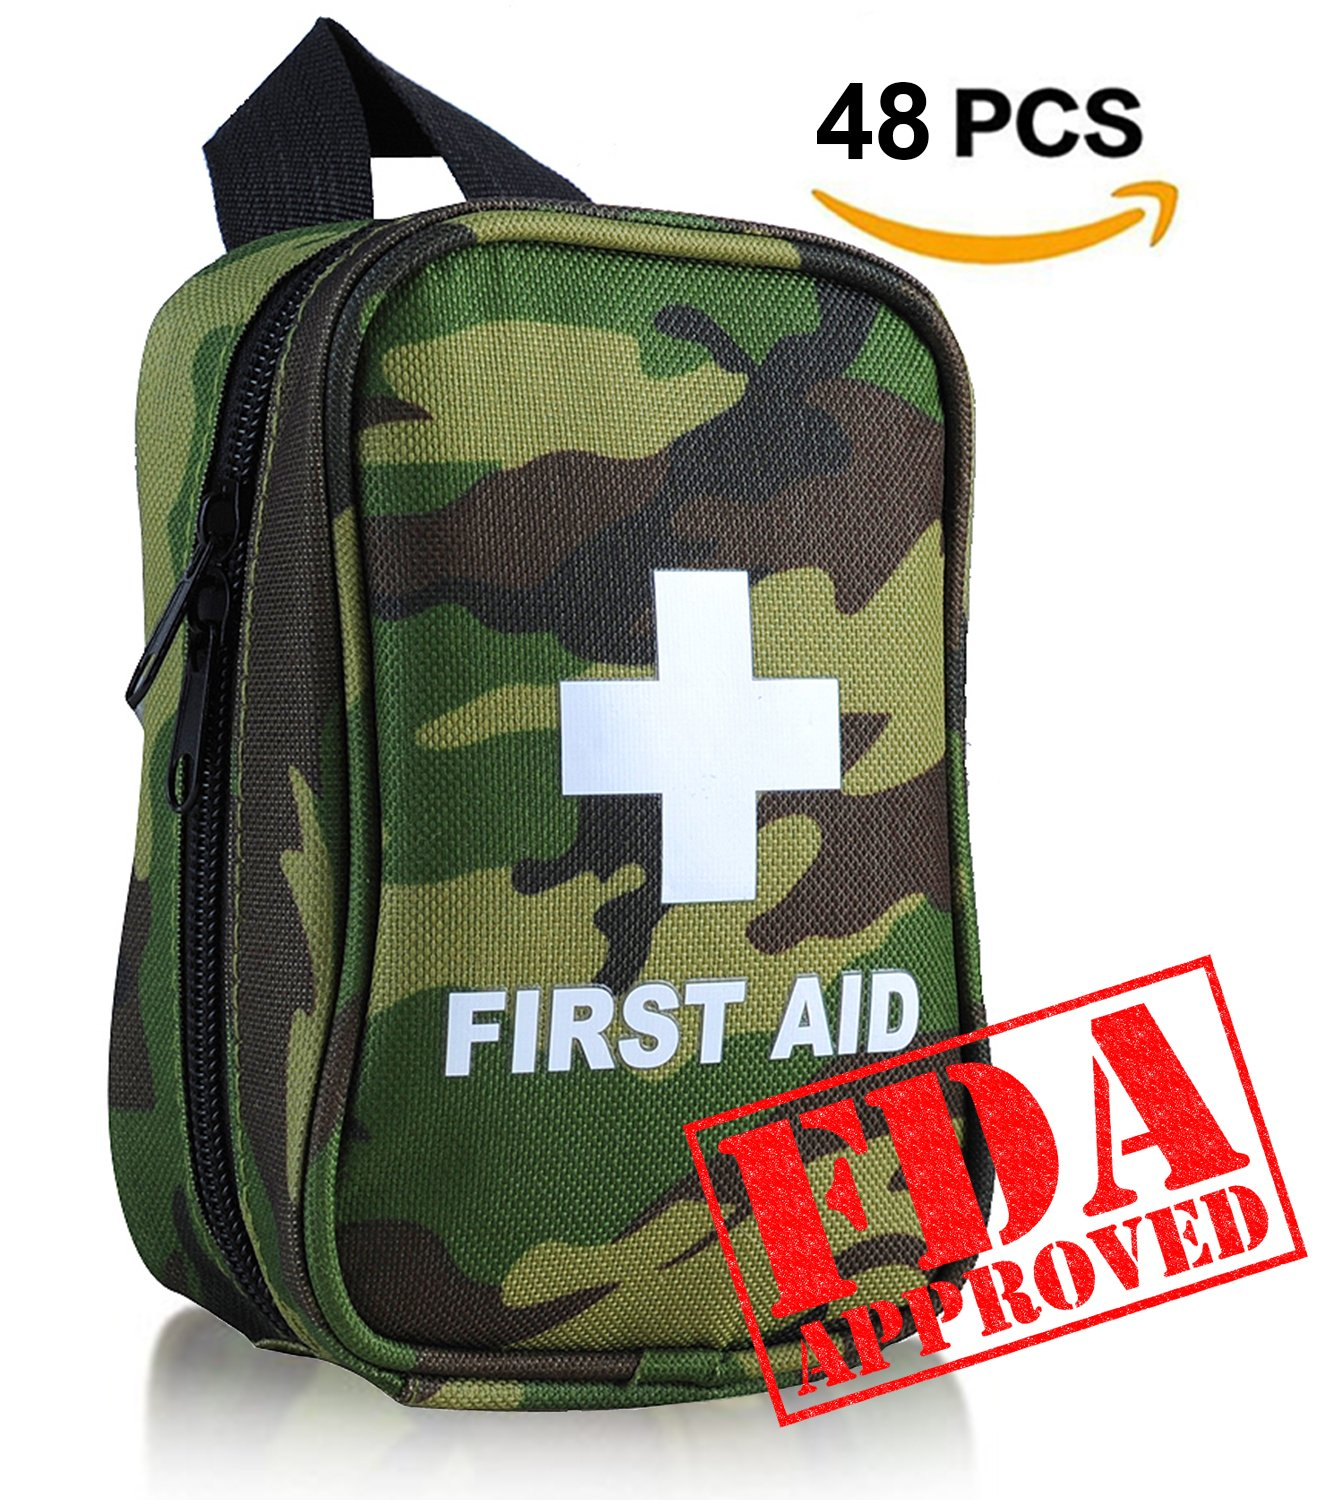 First Aid Kit No Hands Carry Hang on Waist FDA OSHA Small Great Compact First Aid Kit in Emergency for Outdoor Survival Camping Hiking Backpack Biking Travel Sports Car Home Workplace Hunting